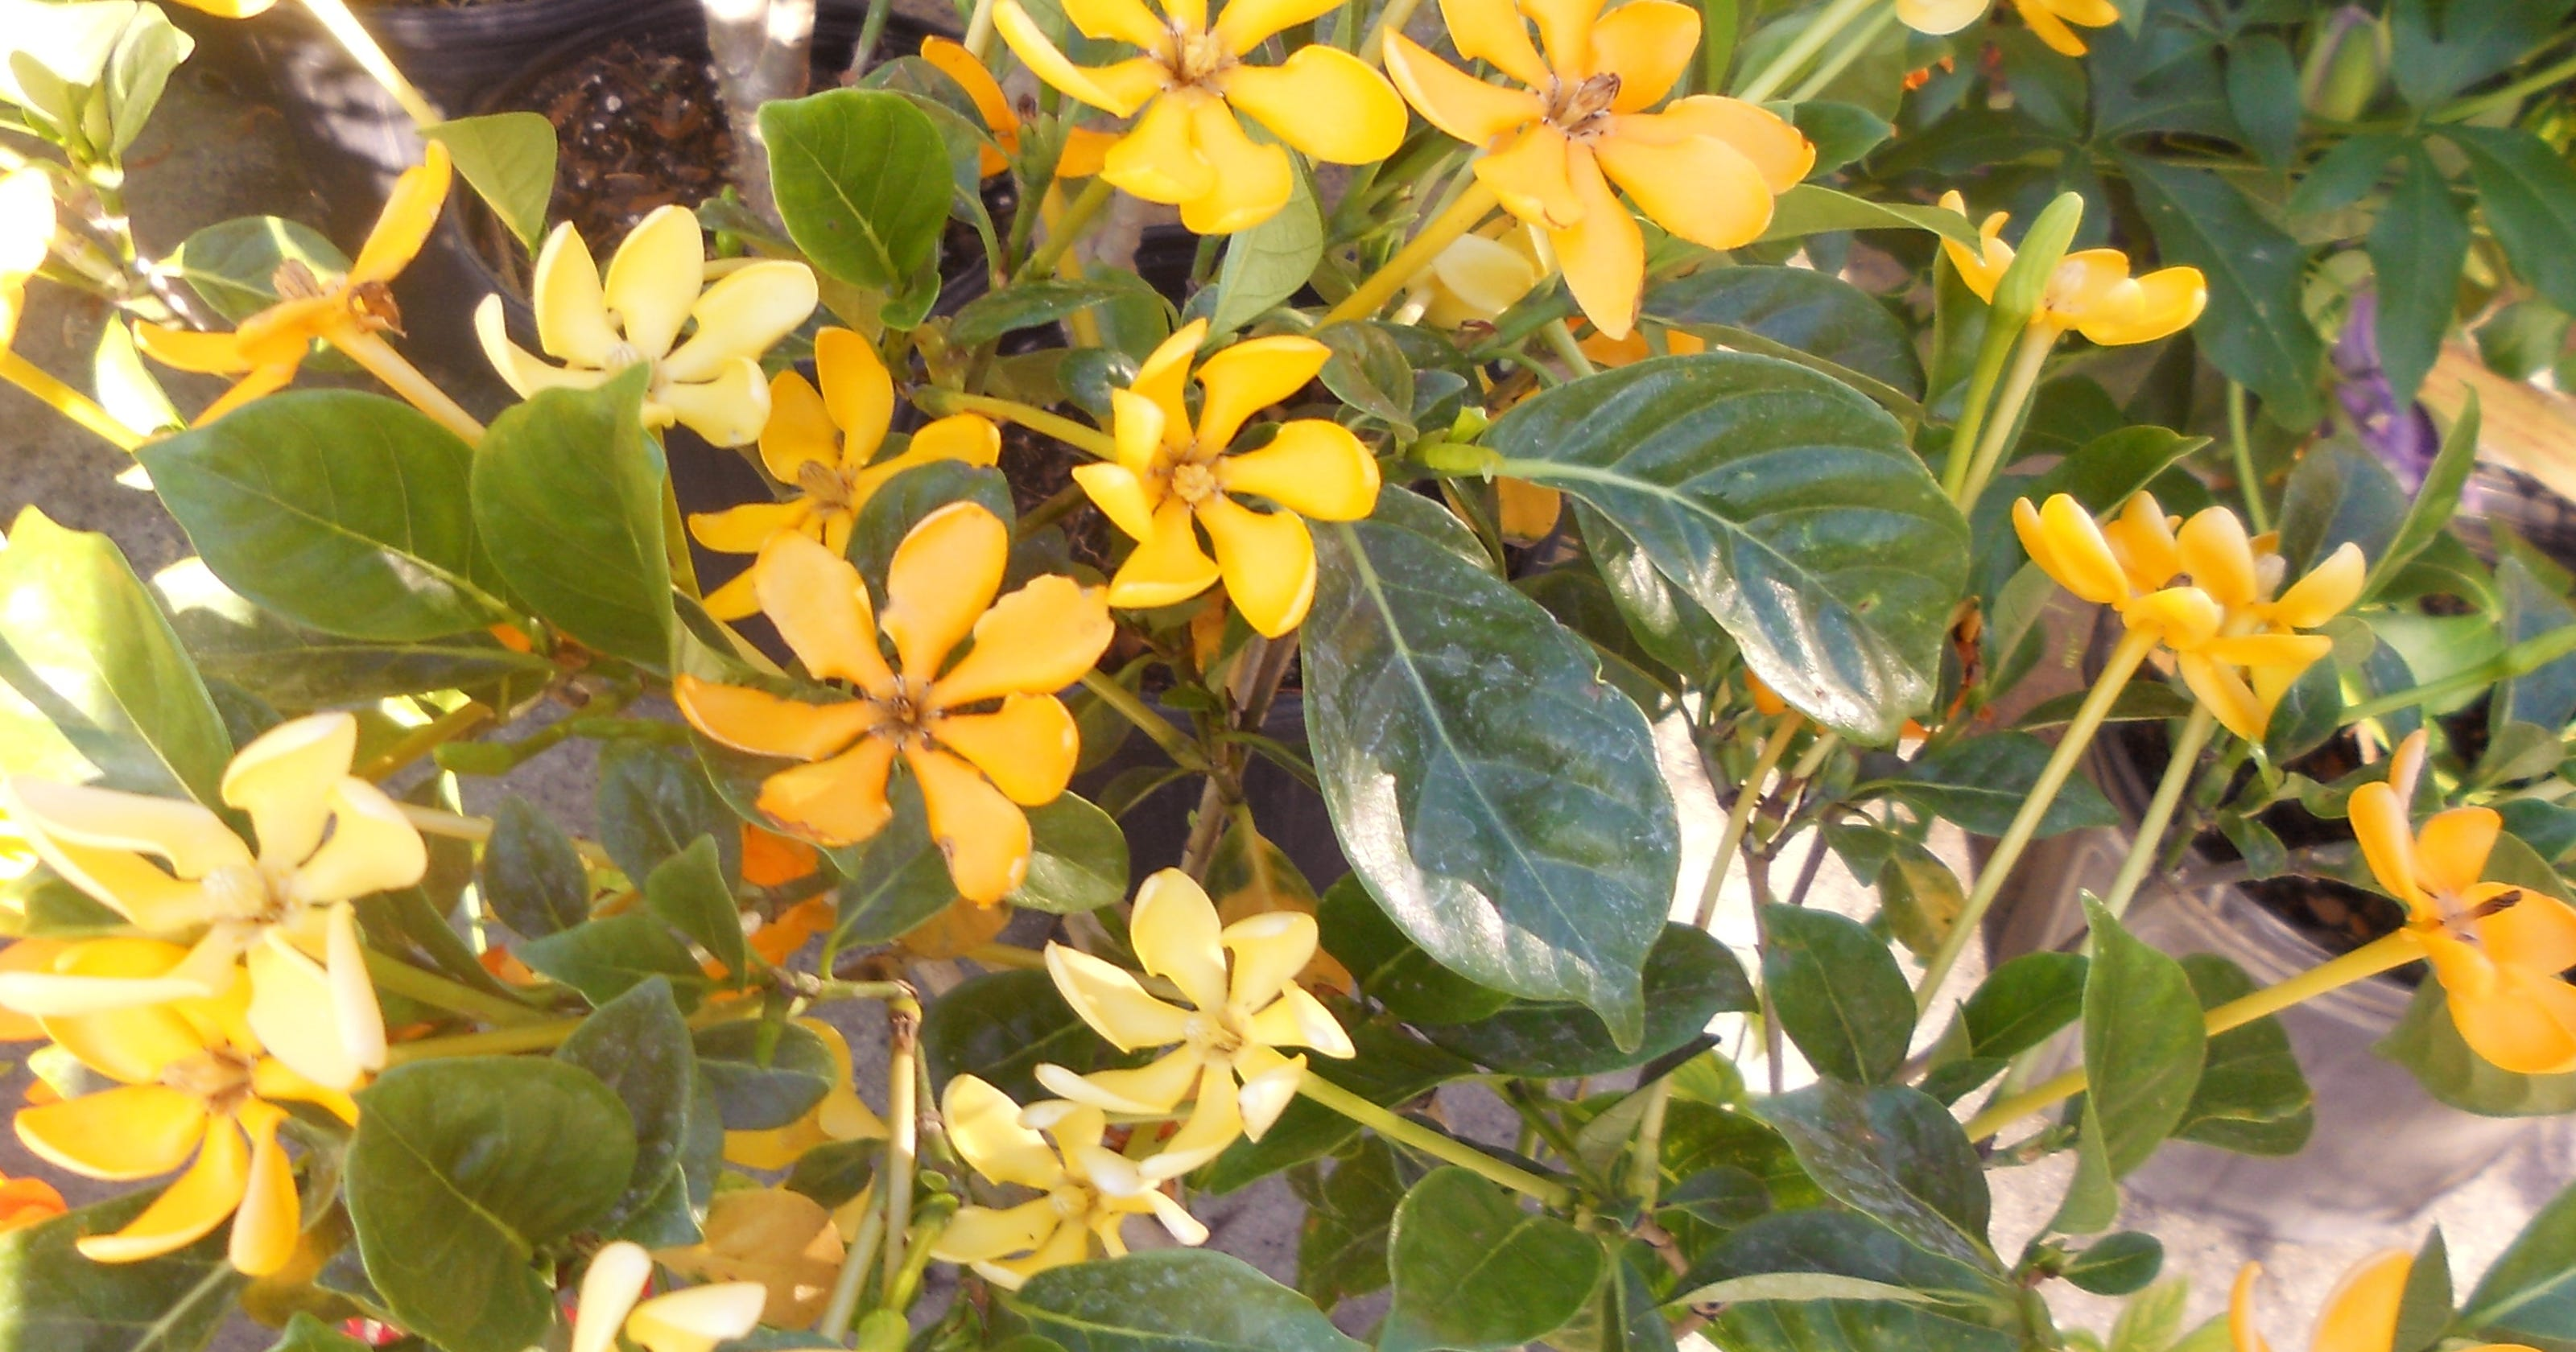 The Season For Fragrant Plants Approaches